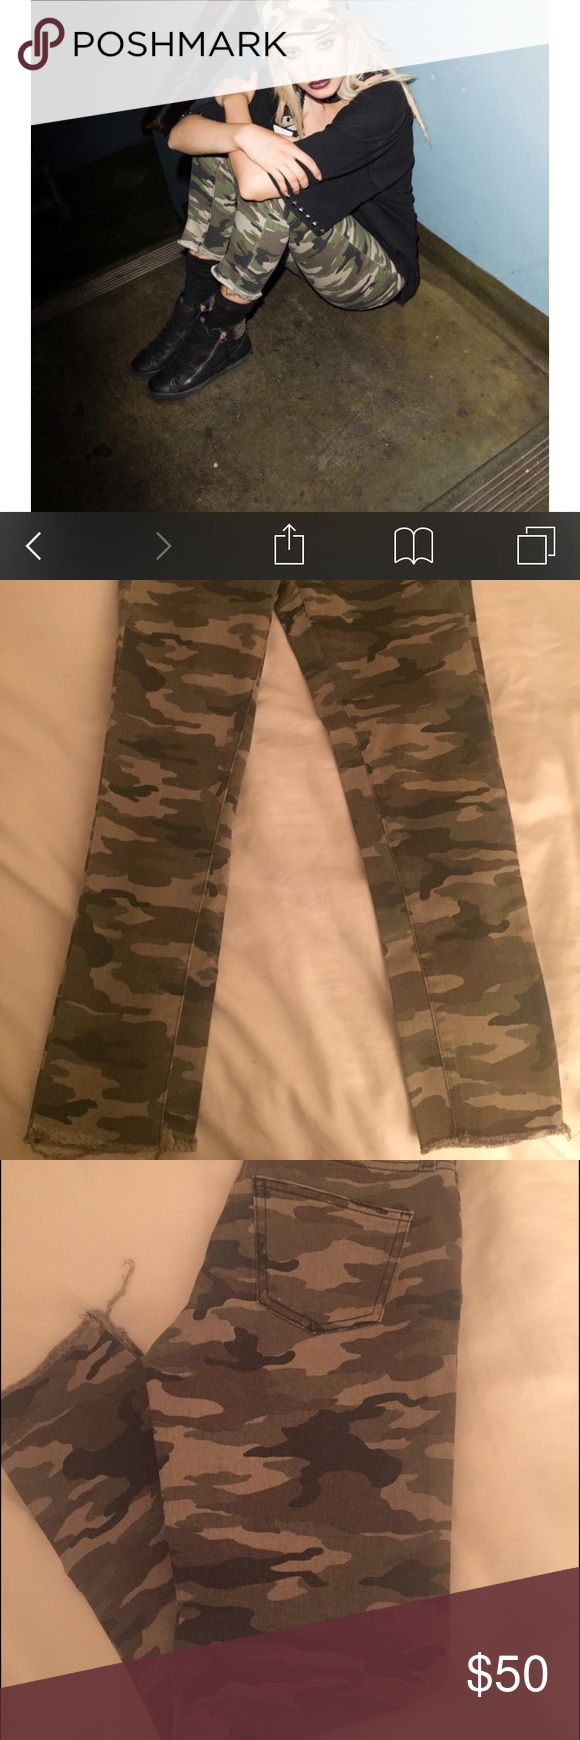 Carmar camoflage jeans brand new size 26 Brand new never worn super cute camo jeans LF Jeans Ankle & Cropped